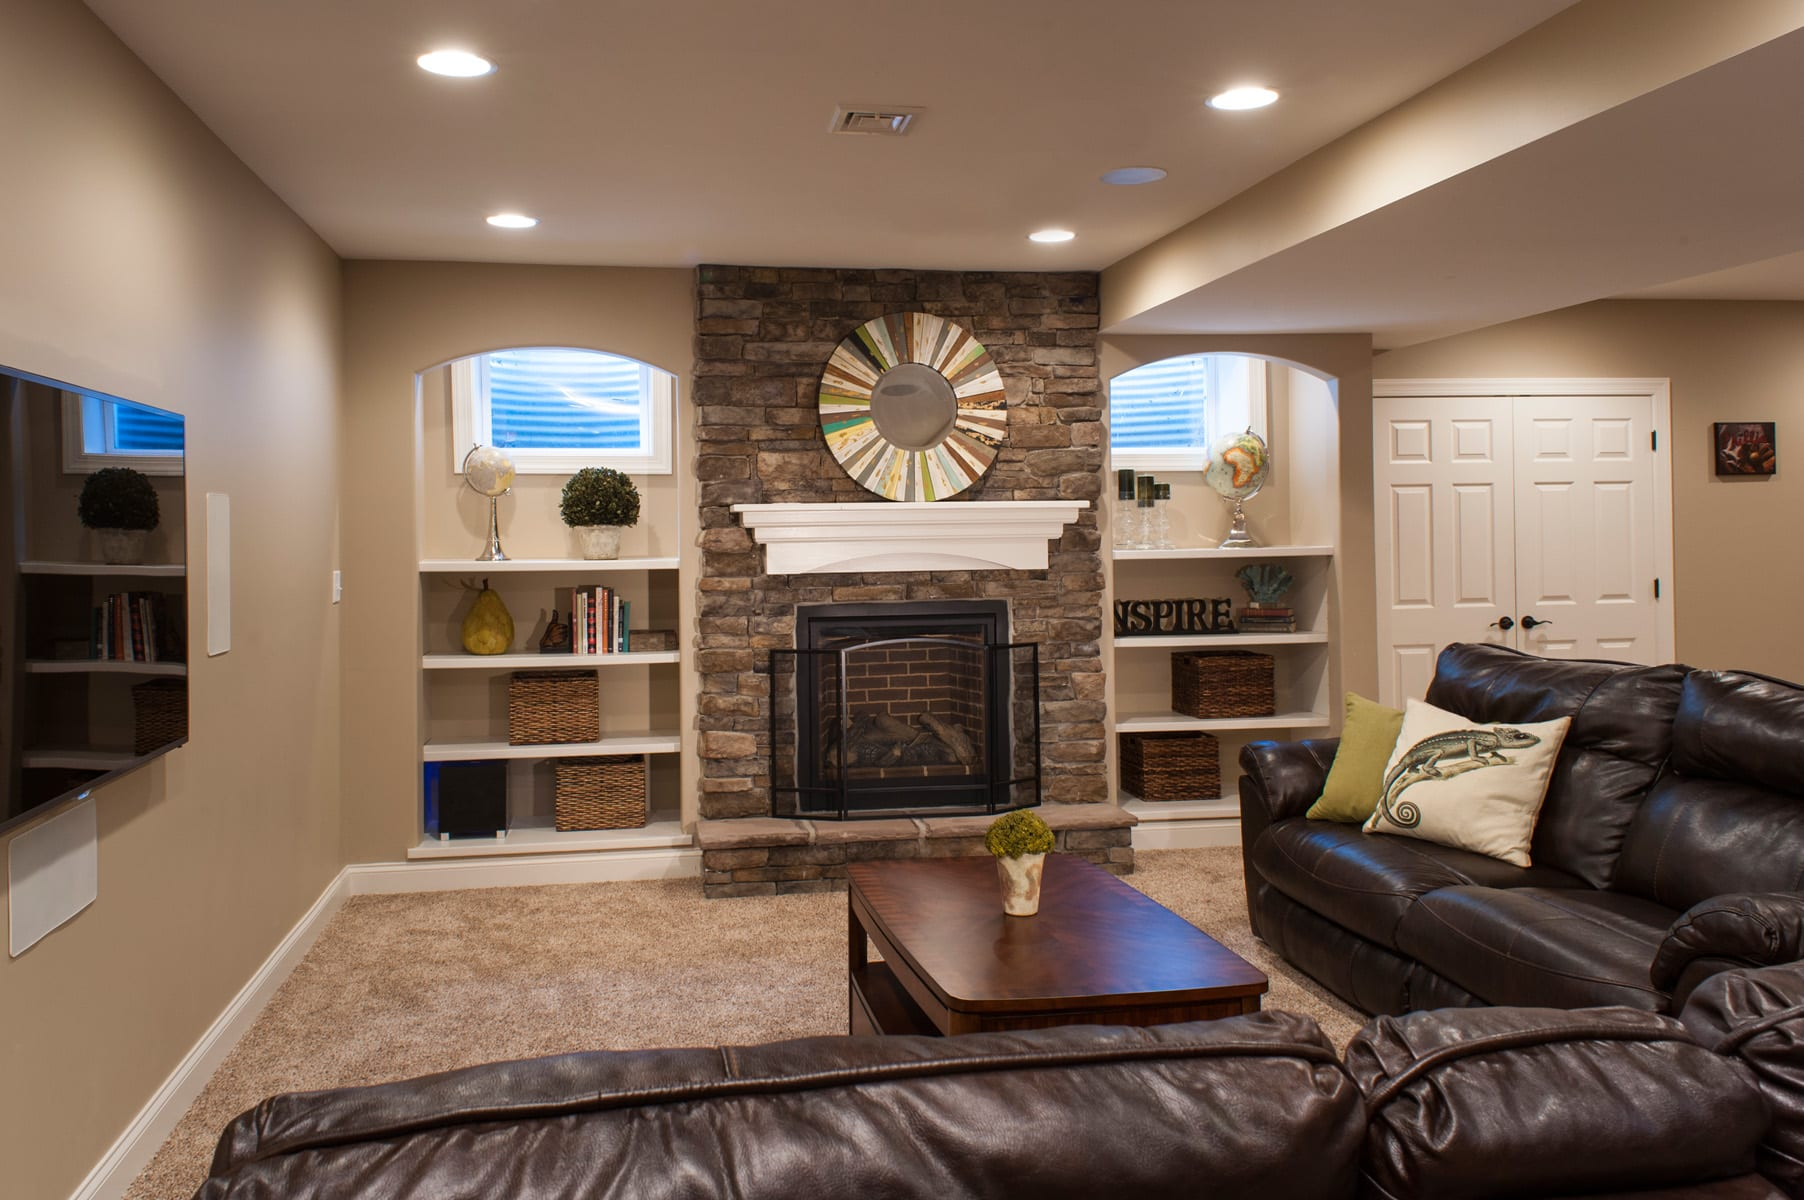 Basement Remodels basement remodeling contractor in harrisburg, pa